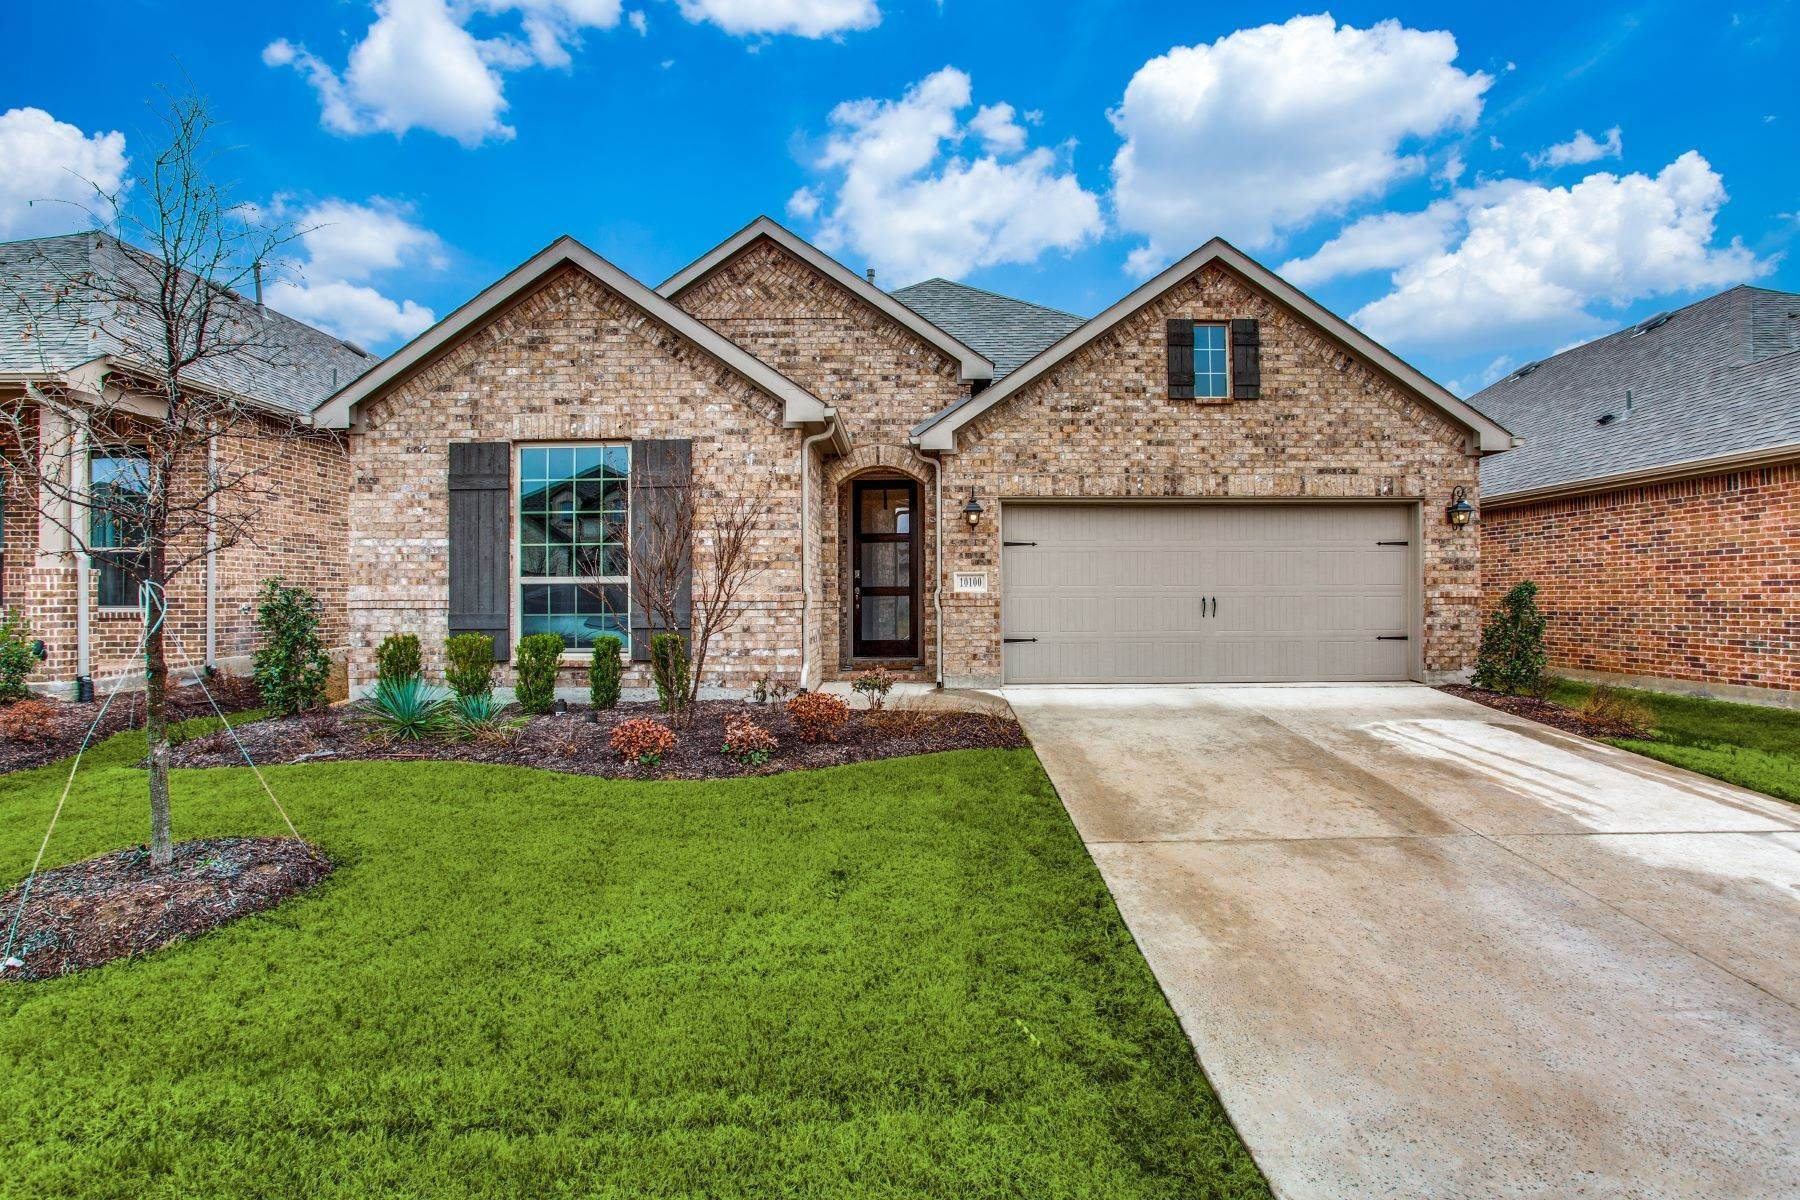 Single Family Homes for Sale at Lake Lewisville Gem! 10100 Bitterroot Drive Oak Point, Texas 75068 United States